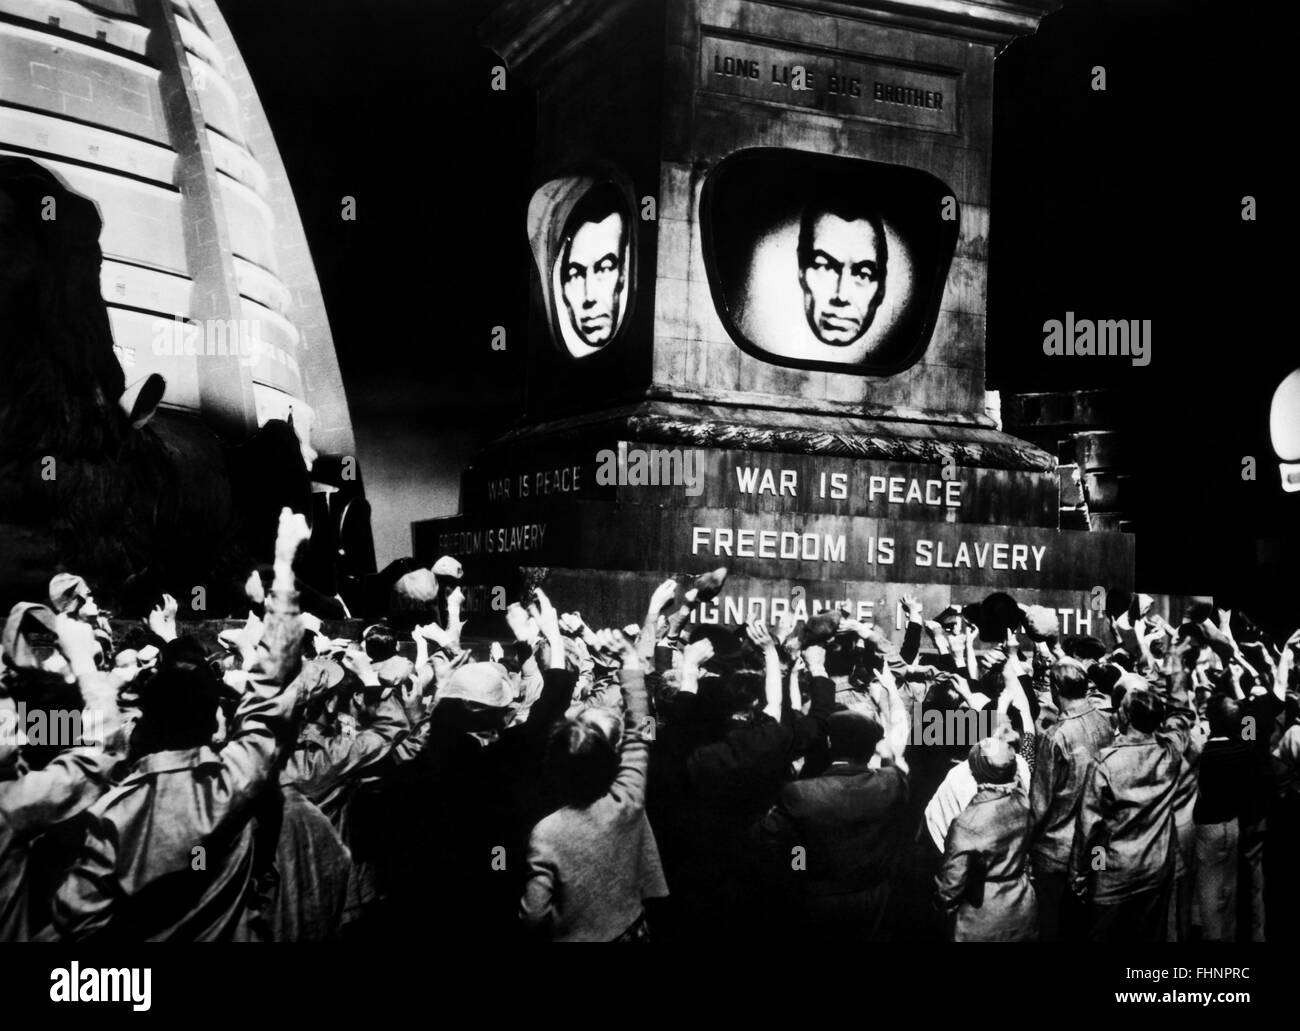 BIG BROTHER IS WATCHING SCREEN 1984; NINETEEN EIGHTY-FOUR (1956) - Stock Image